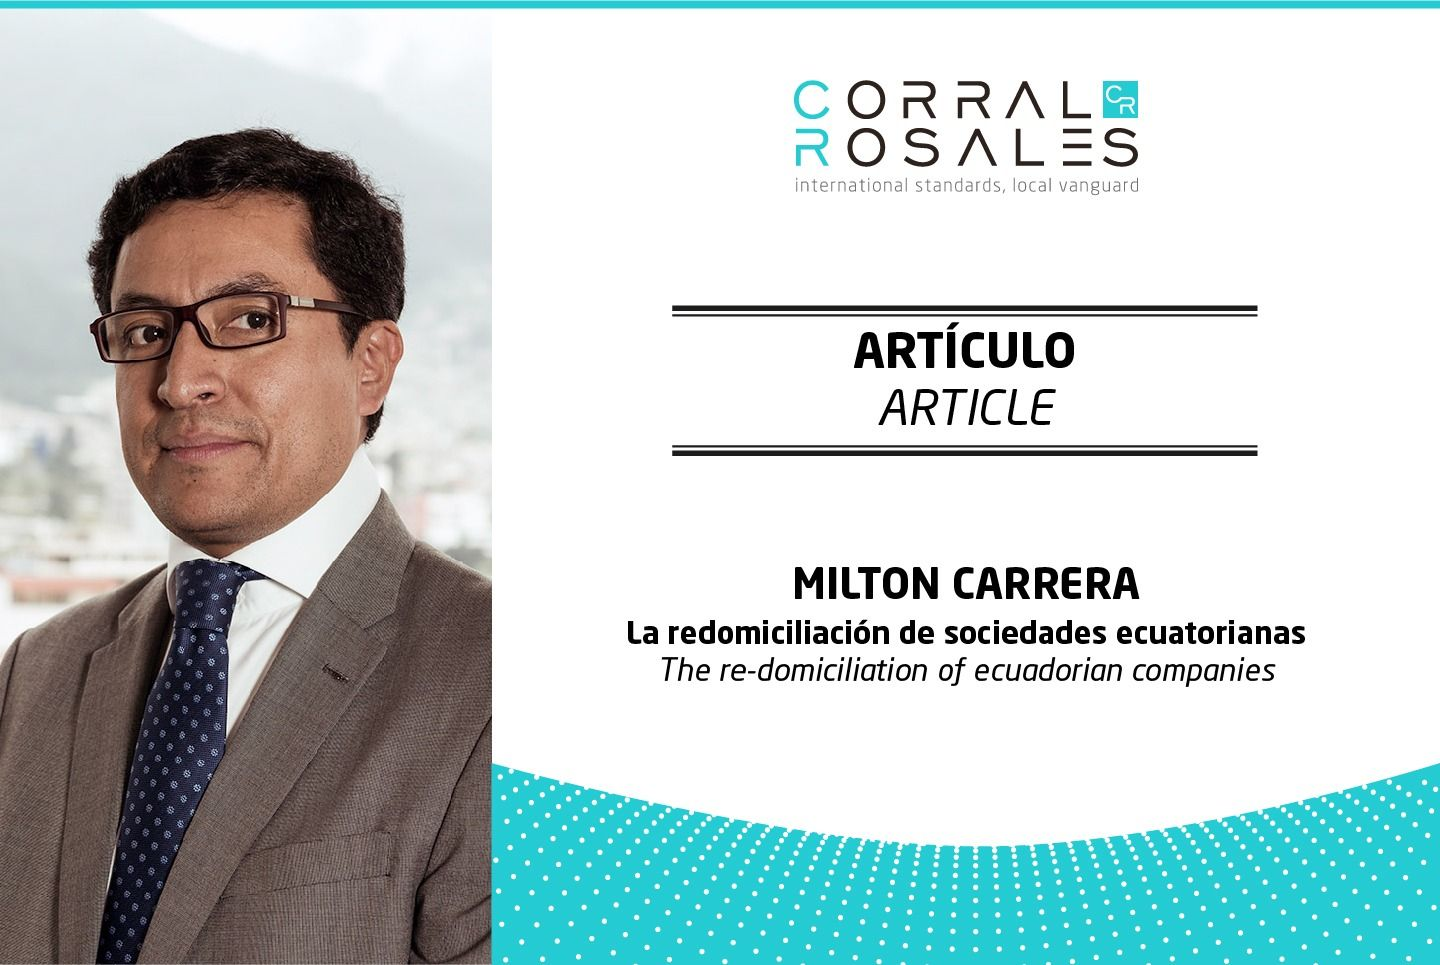 re-domiciliation-of-ecuadorian-companies-corporate-milton-carrera